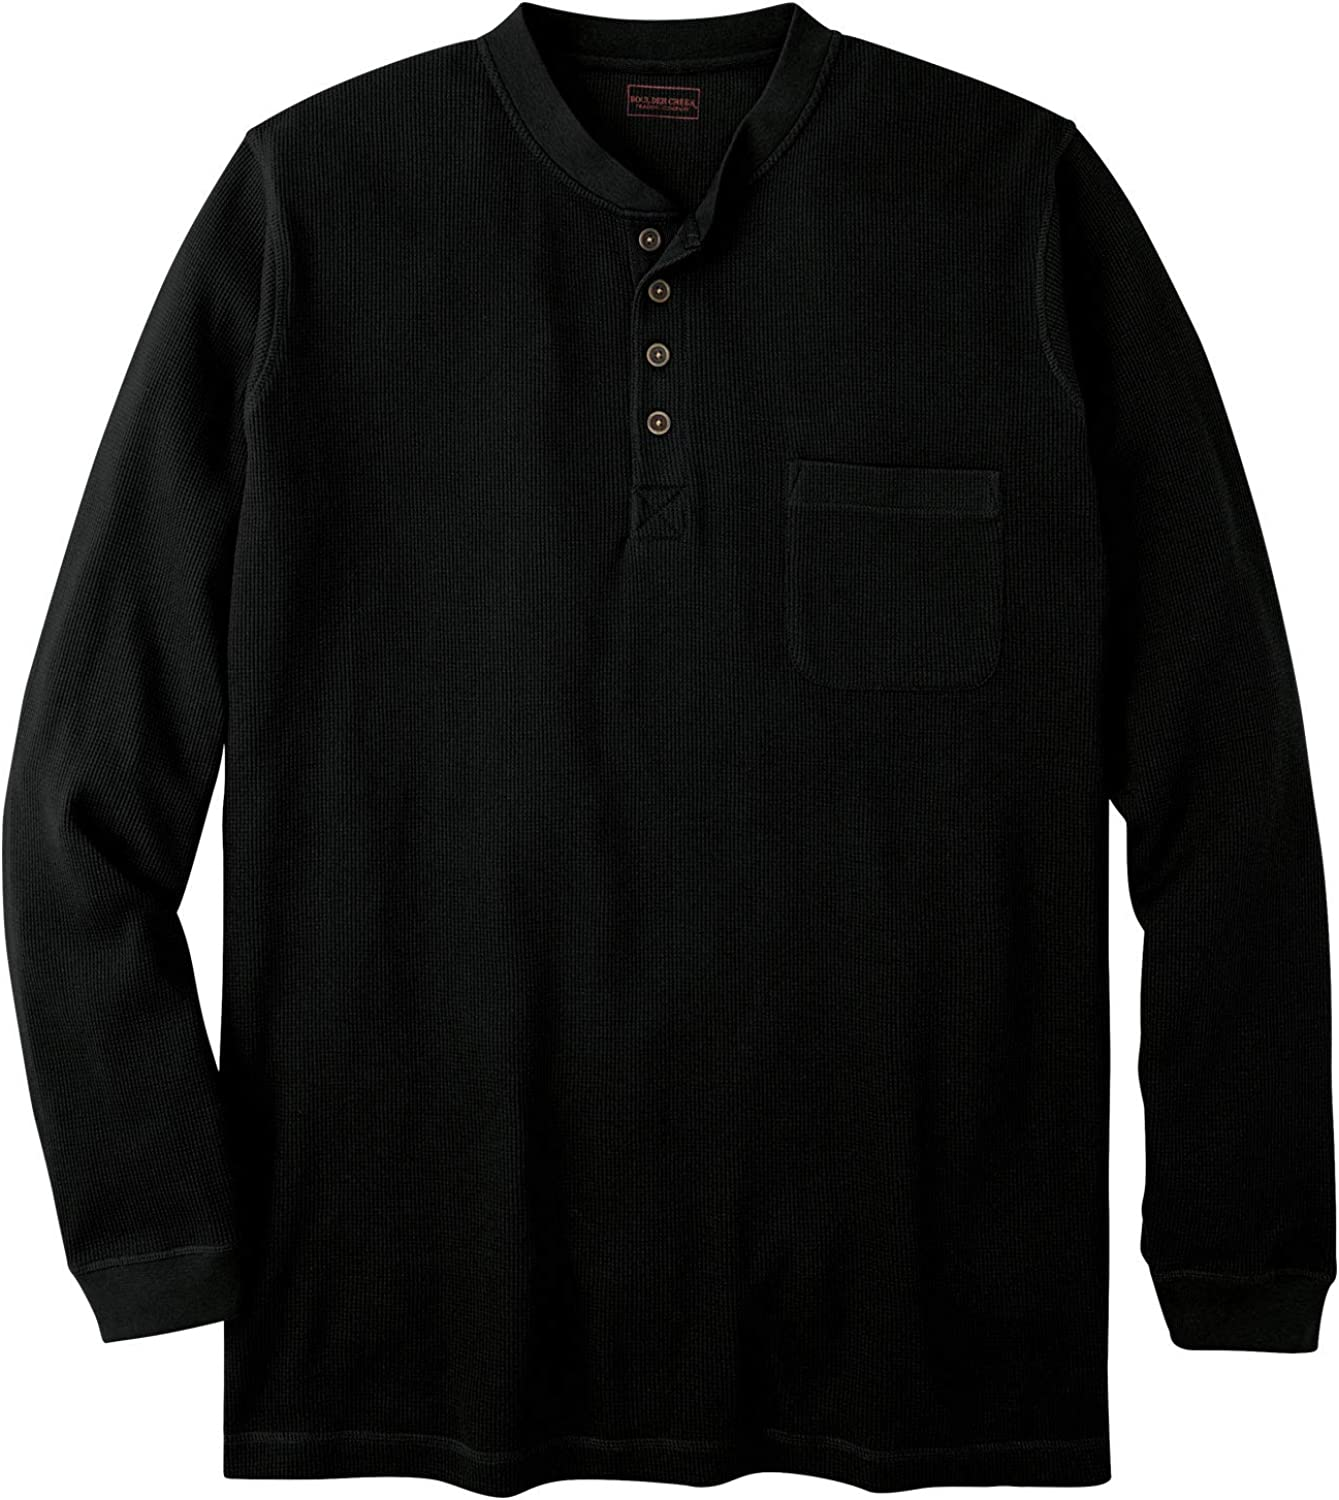 Boulder Creek Mens Big /& Tall Thermal Pocket Longer-Length Henley